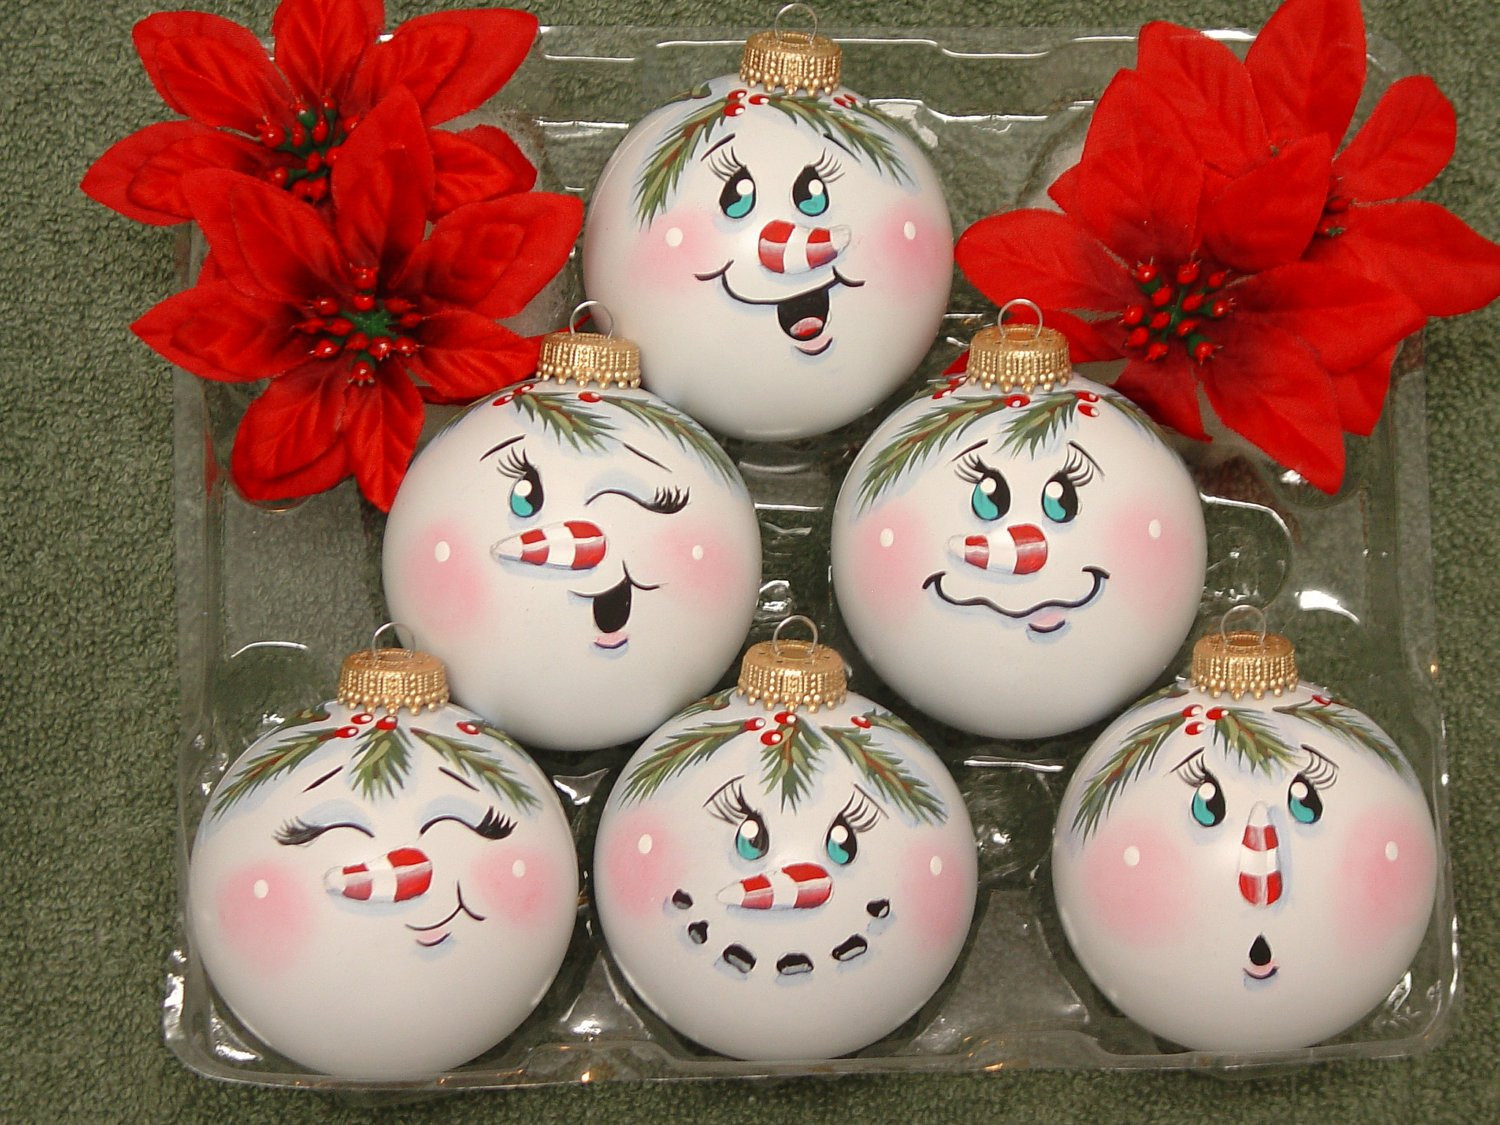 Beautiful Unavailable Listing On Etsy Snowman Christmas ornaments Of Adorable 45 Models Snowman Christmas ornaments